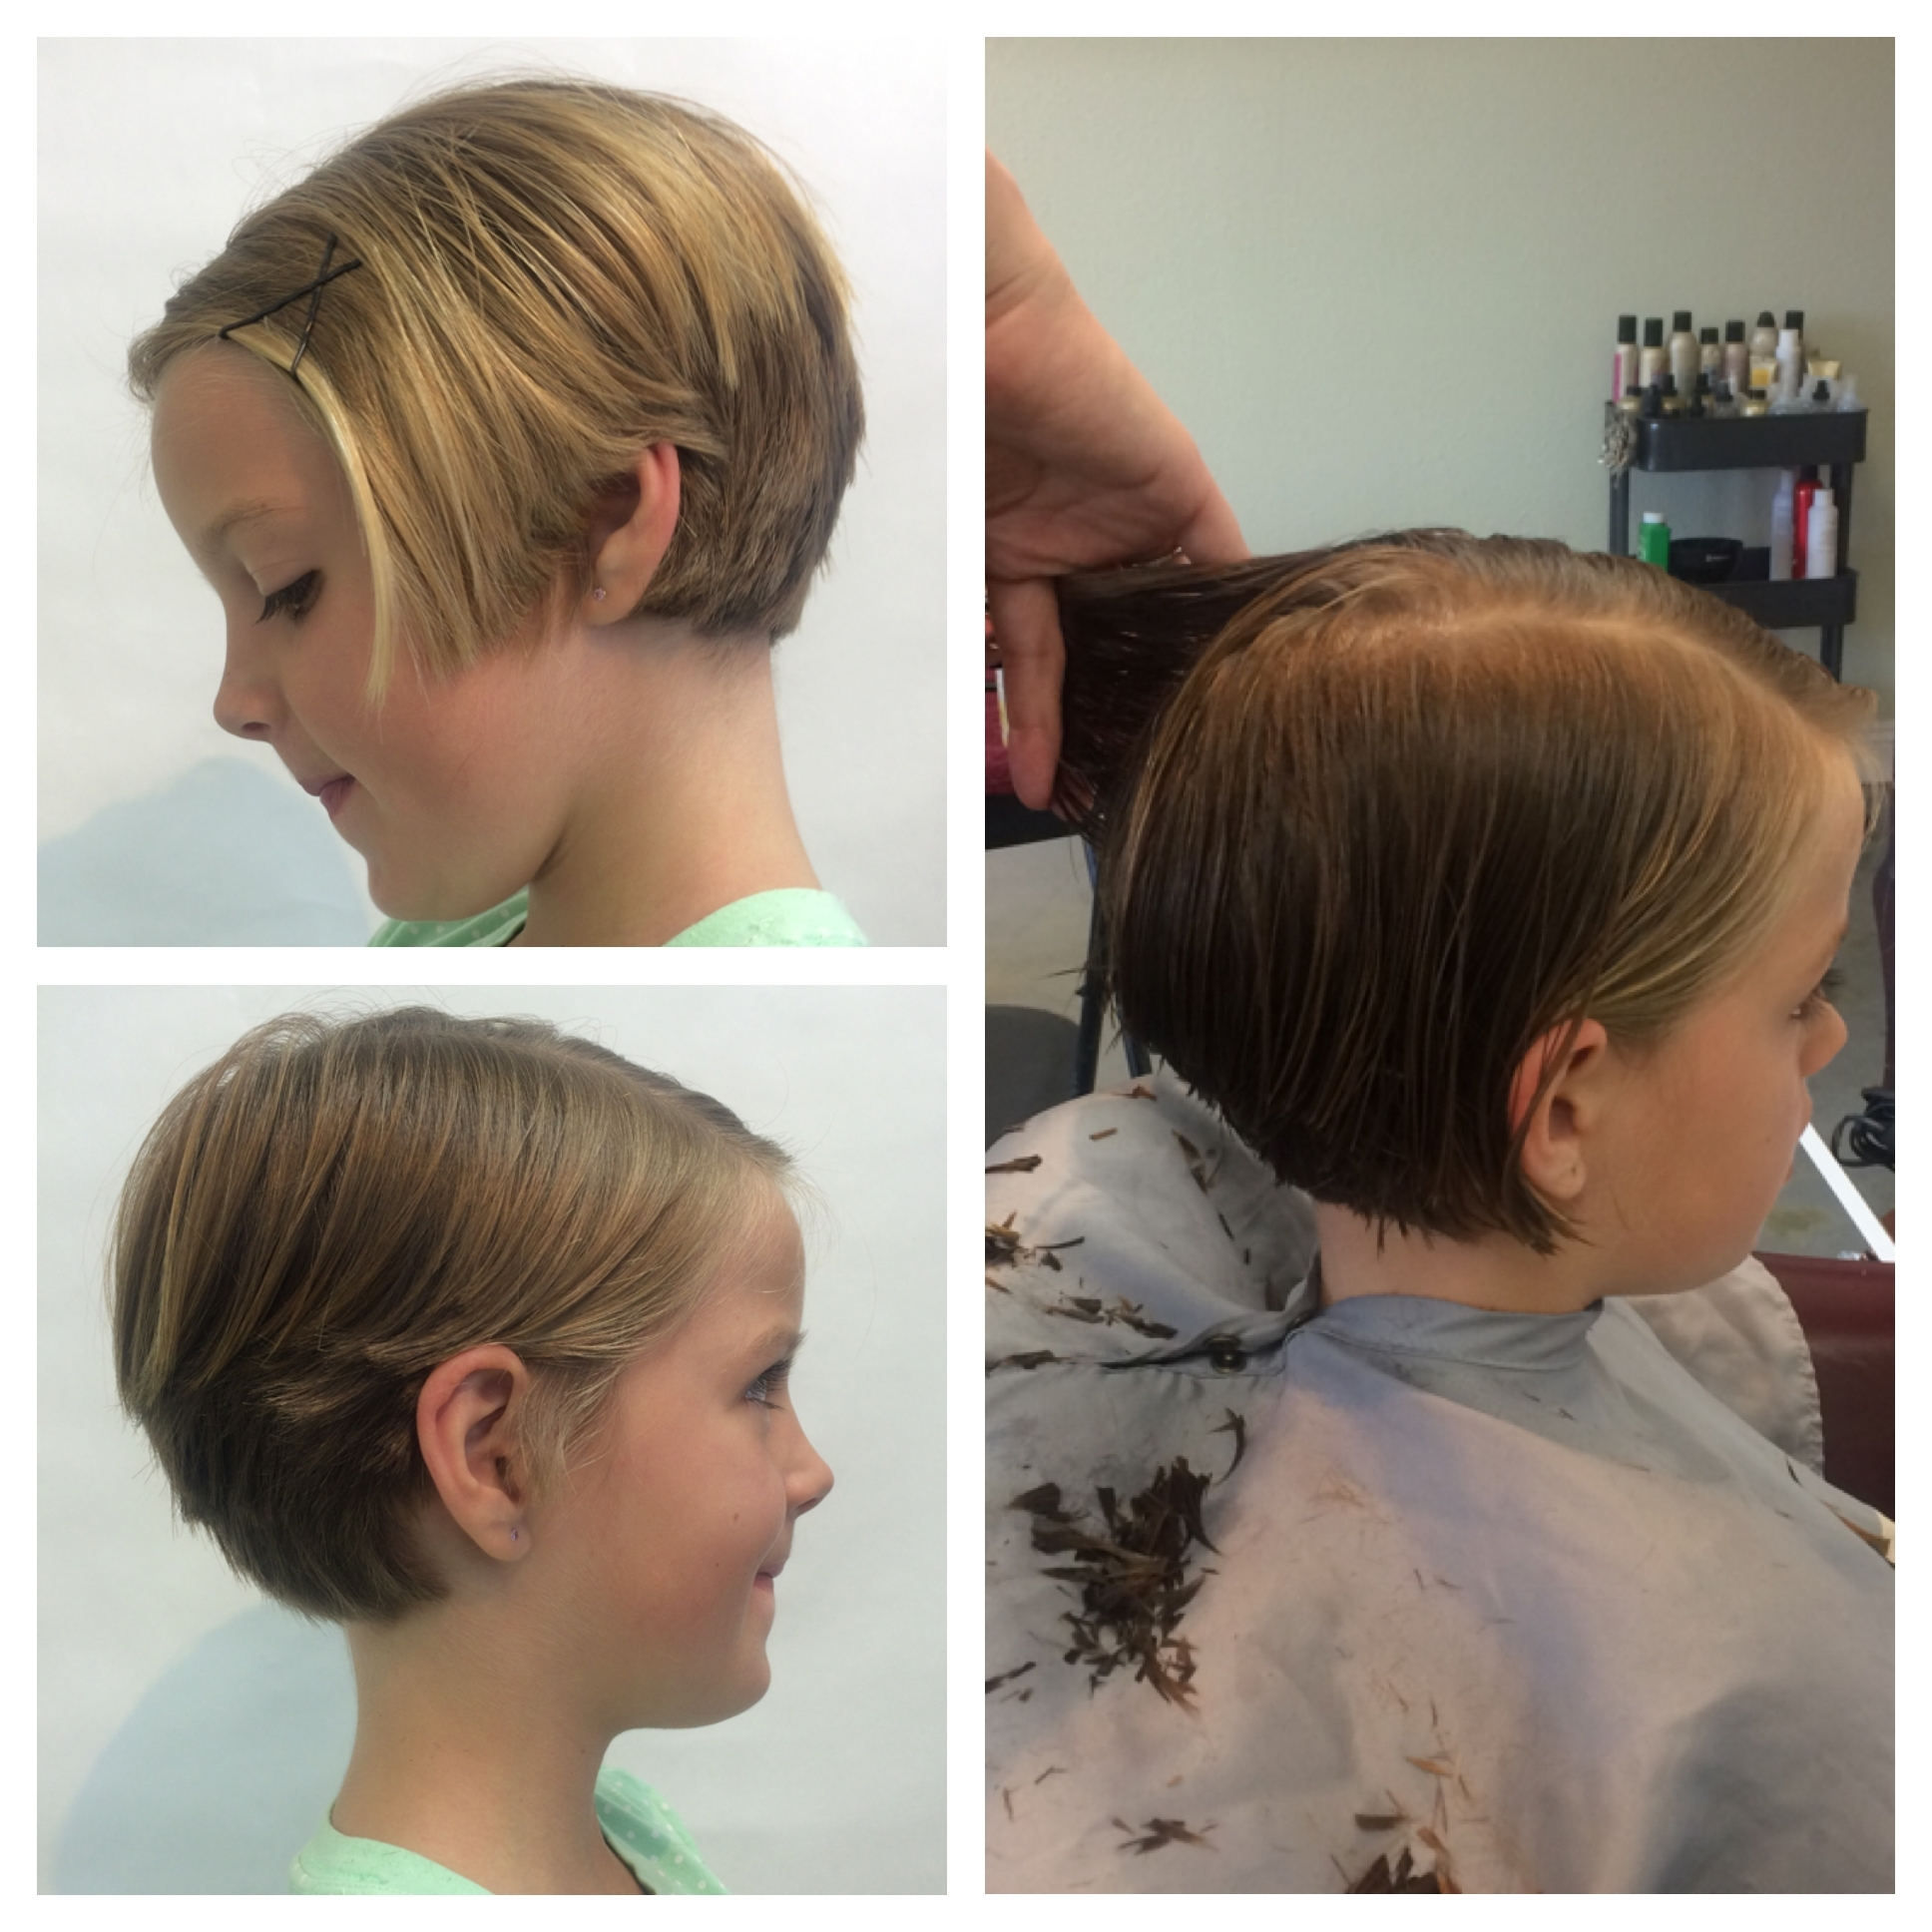 Child Pixie Hair Cut Girls Pixie Hairstyle Cute Short Hair Pertaining To Best And Newest Pixie Hairstyles For Kids (View 3 of 15)